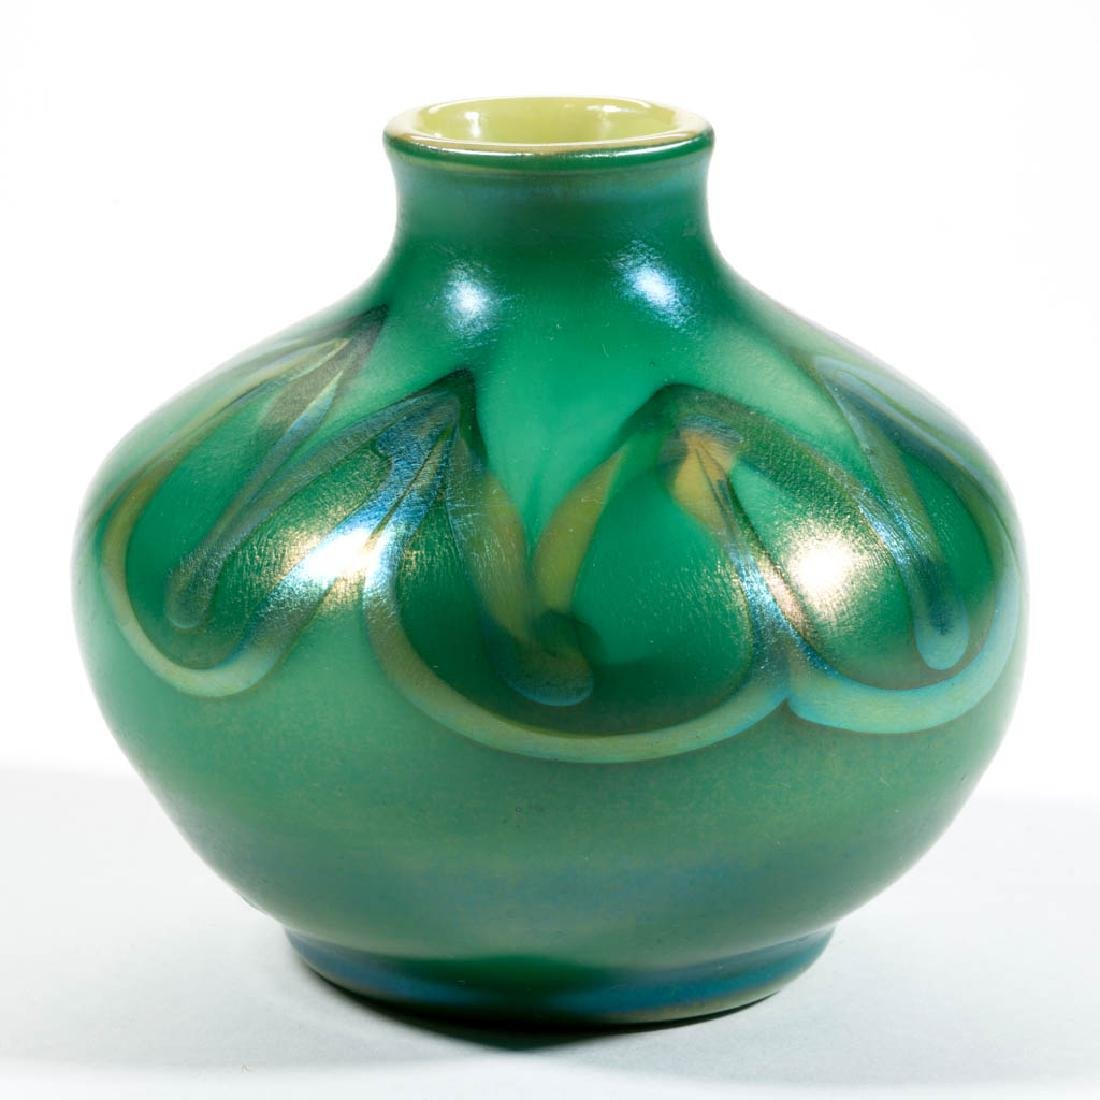 TIFFANY FAVRILE PULLED DECORATED ART GLASS VASE